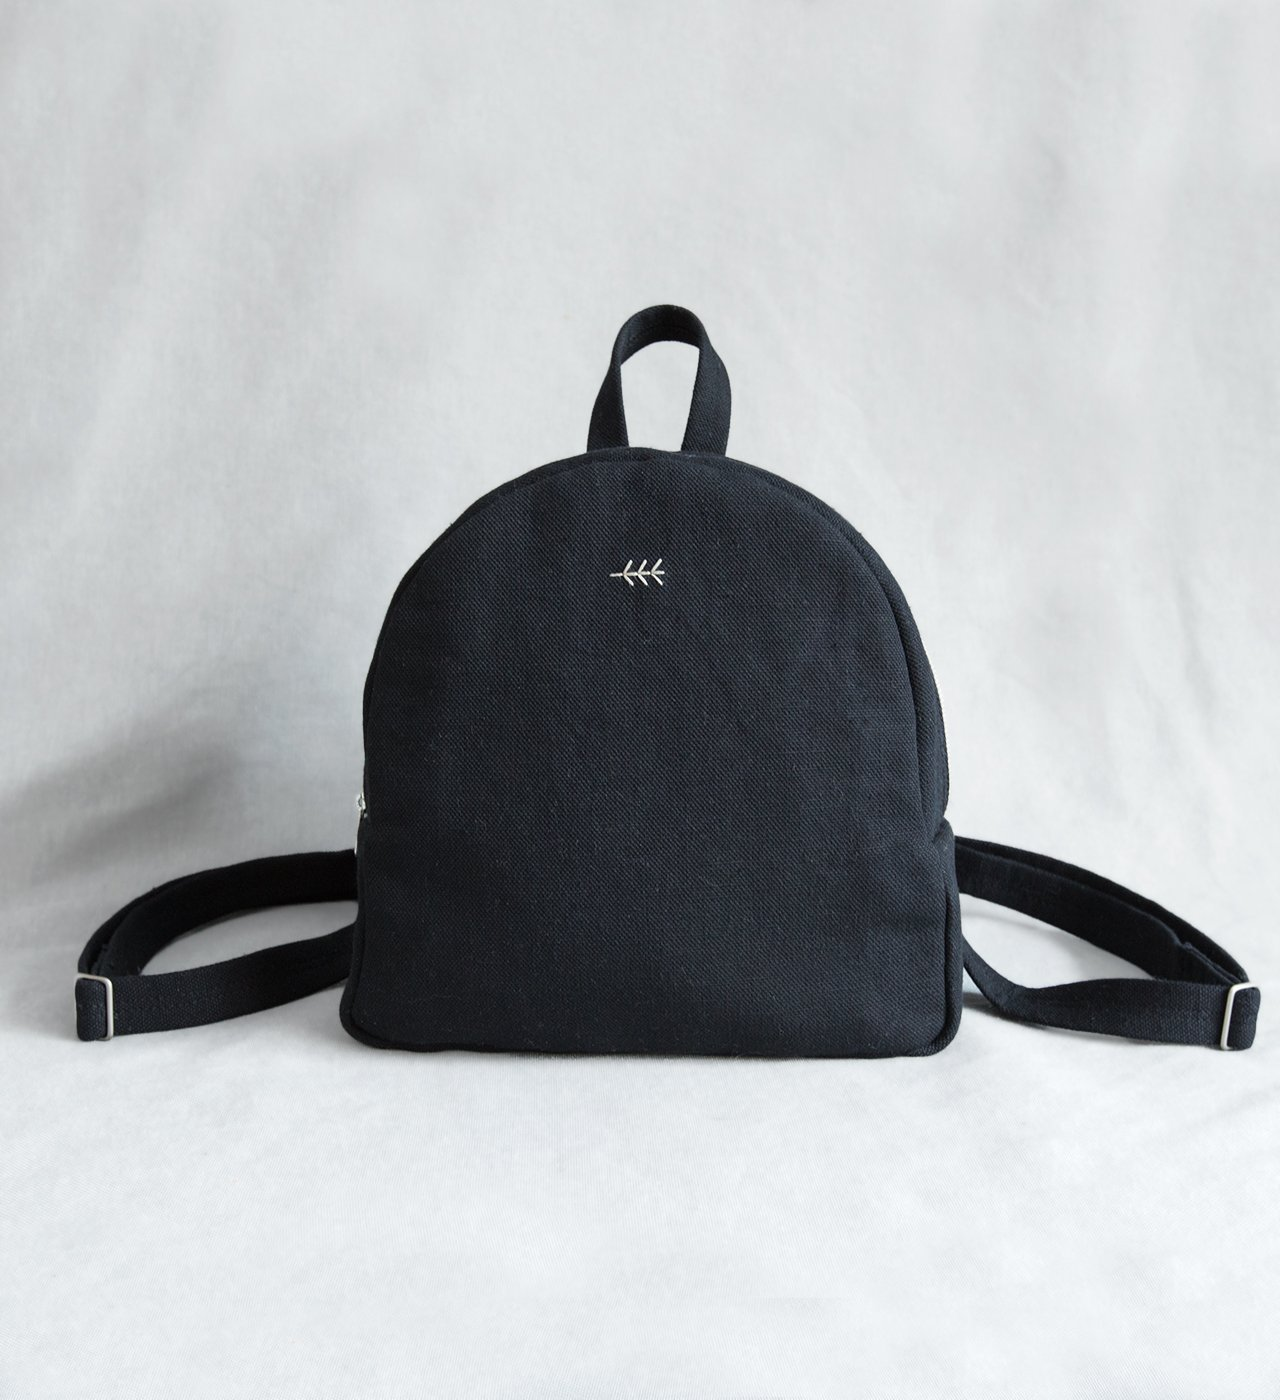 Backpack linen black small backpack canvas linen textile embroidered hand embroidery women's backpack twig organic bag mini backpack